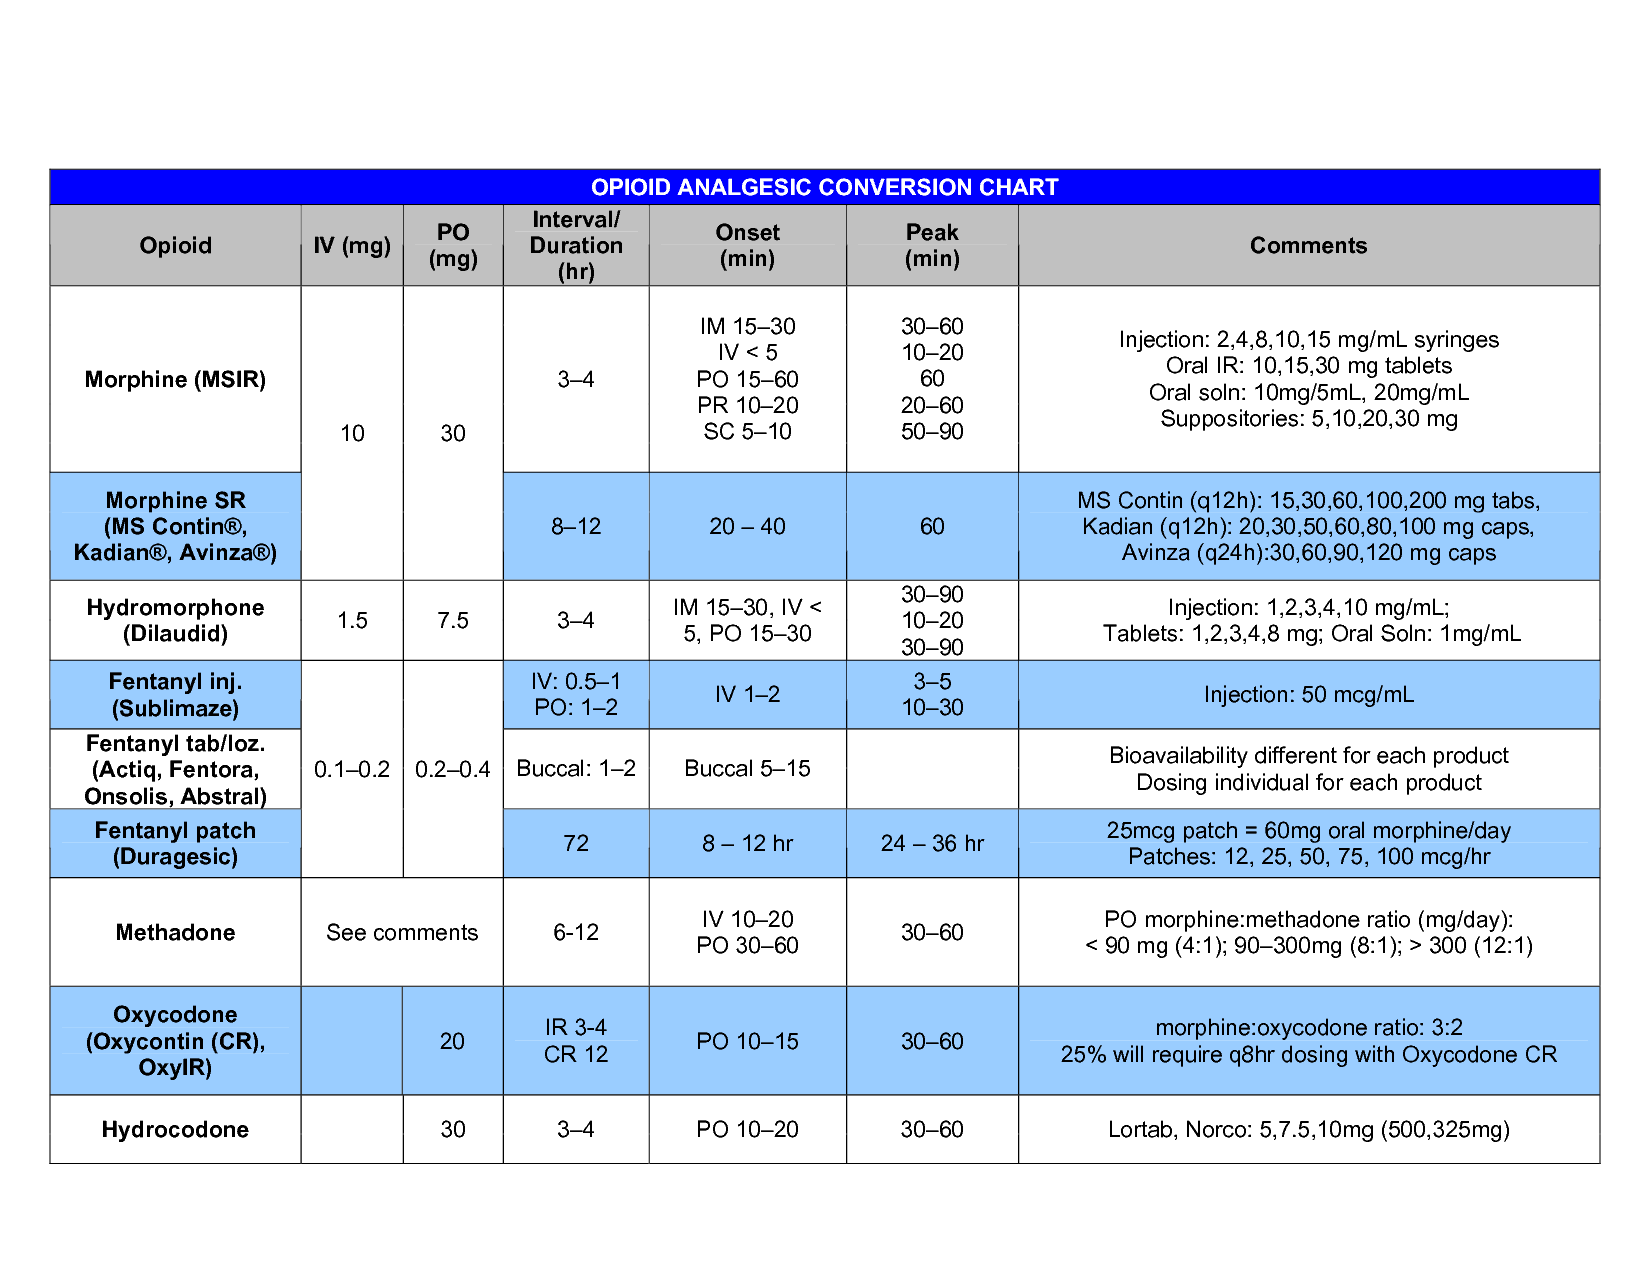 Opiate Dosing Chart Opioid Gesic Conversion Iv Mg Po